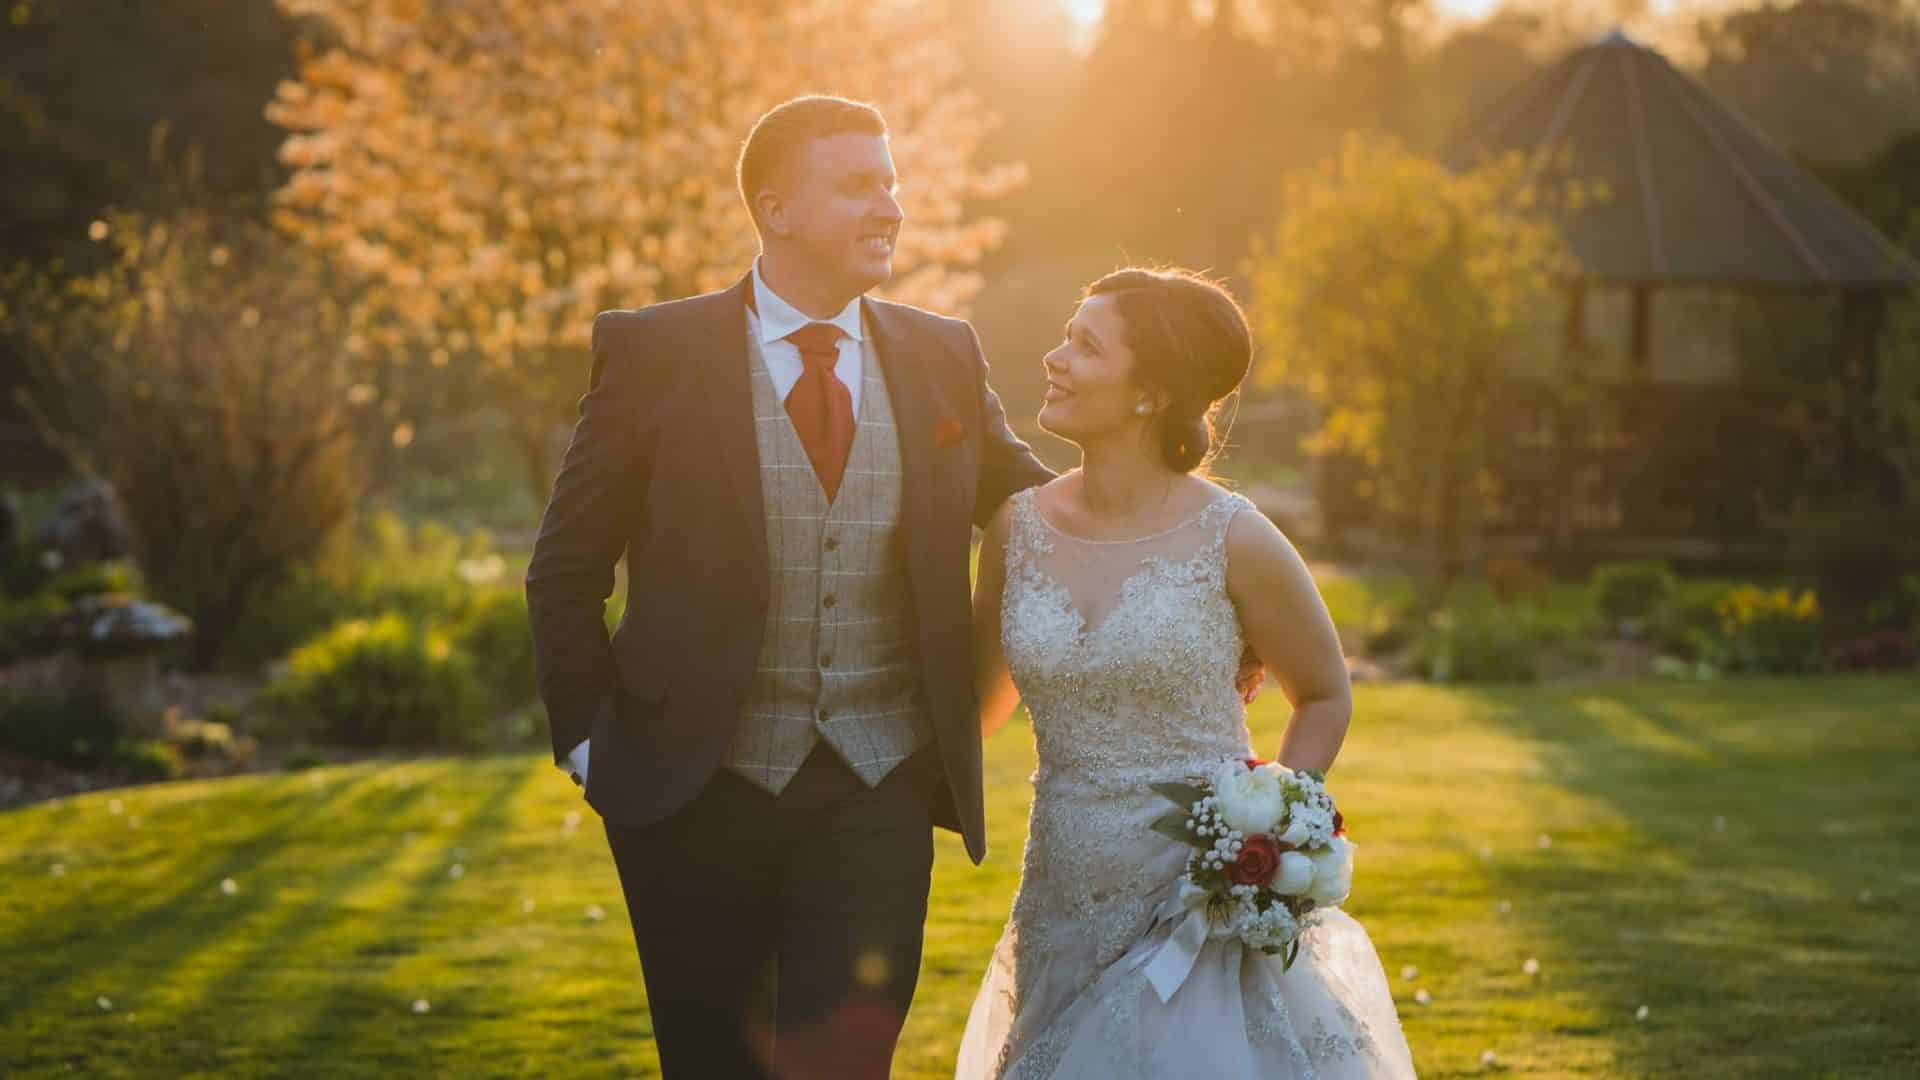 Miskin manor wedding photography of Bride and groom walking around the venue